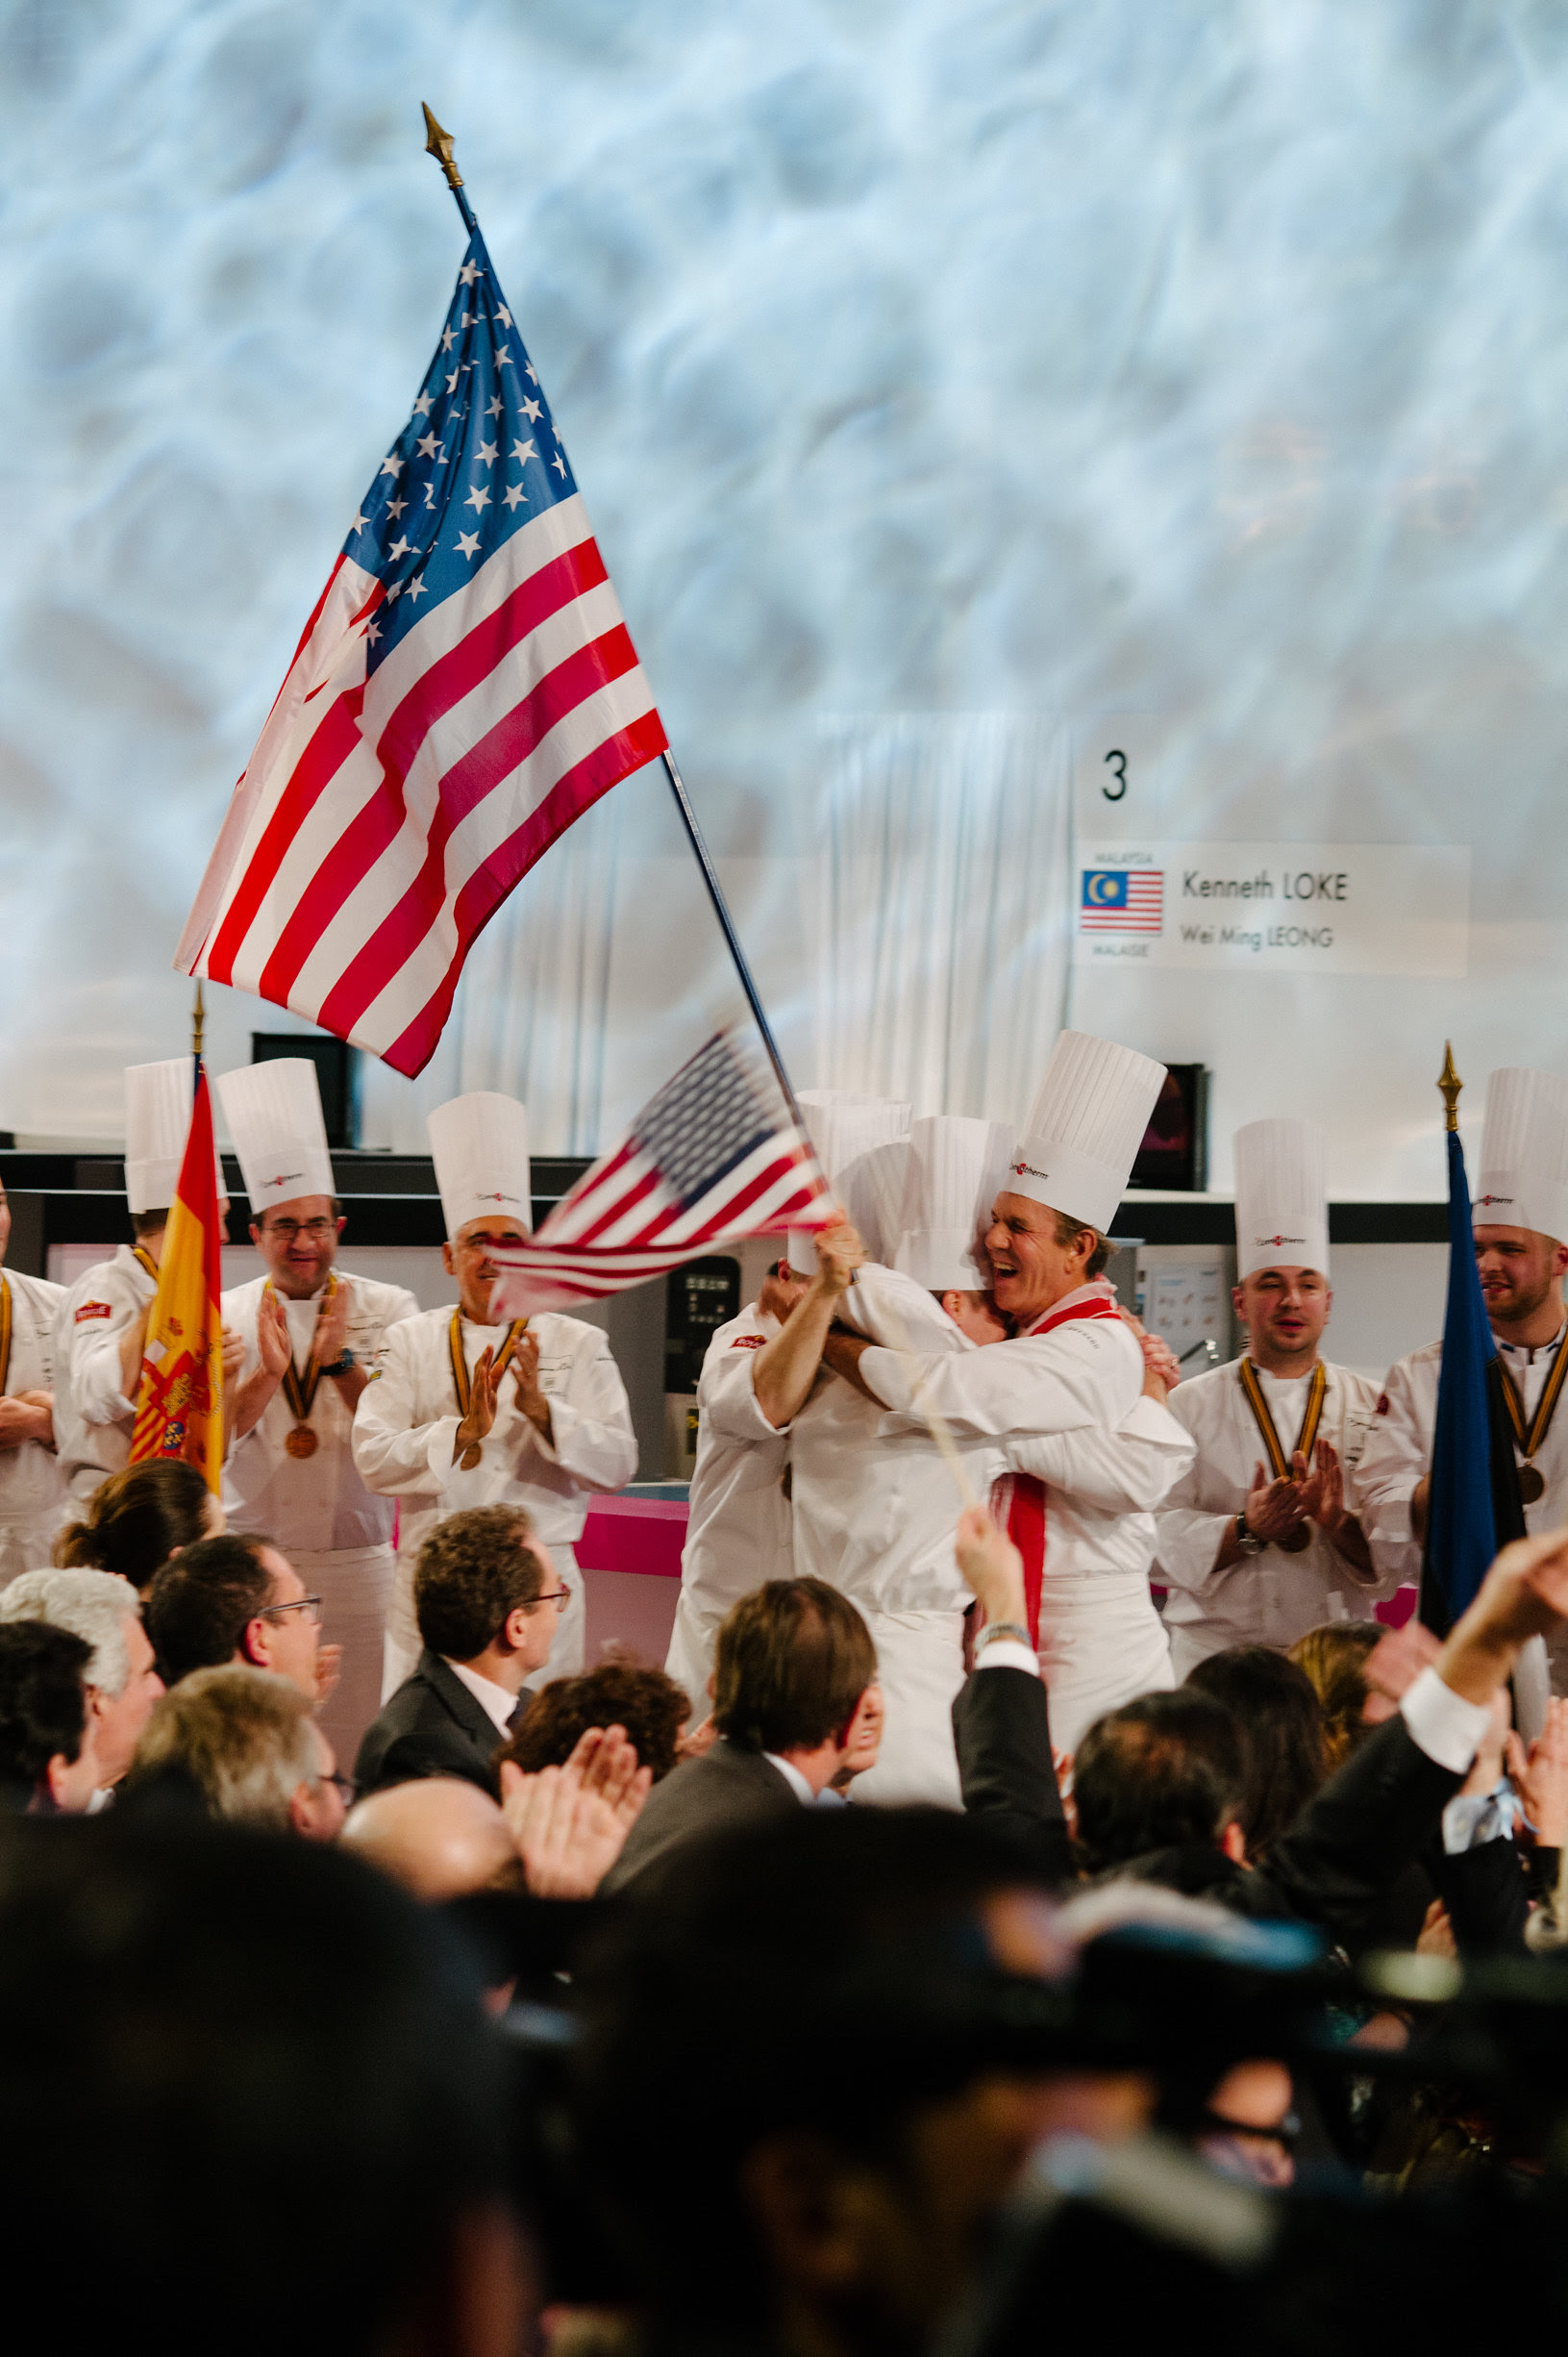 One Year Ago: Team USA Wins Silver at the Bocuse d'Or